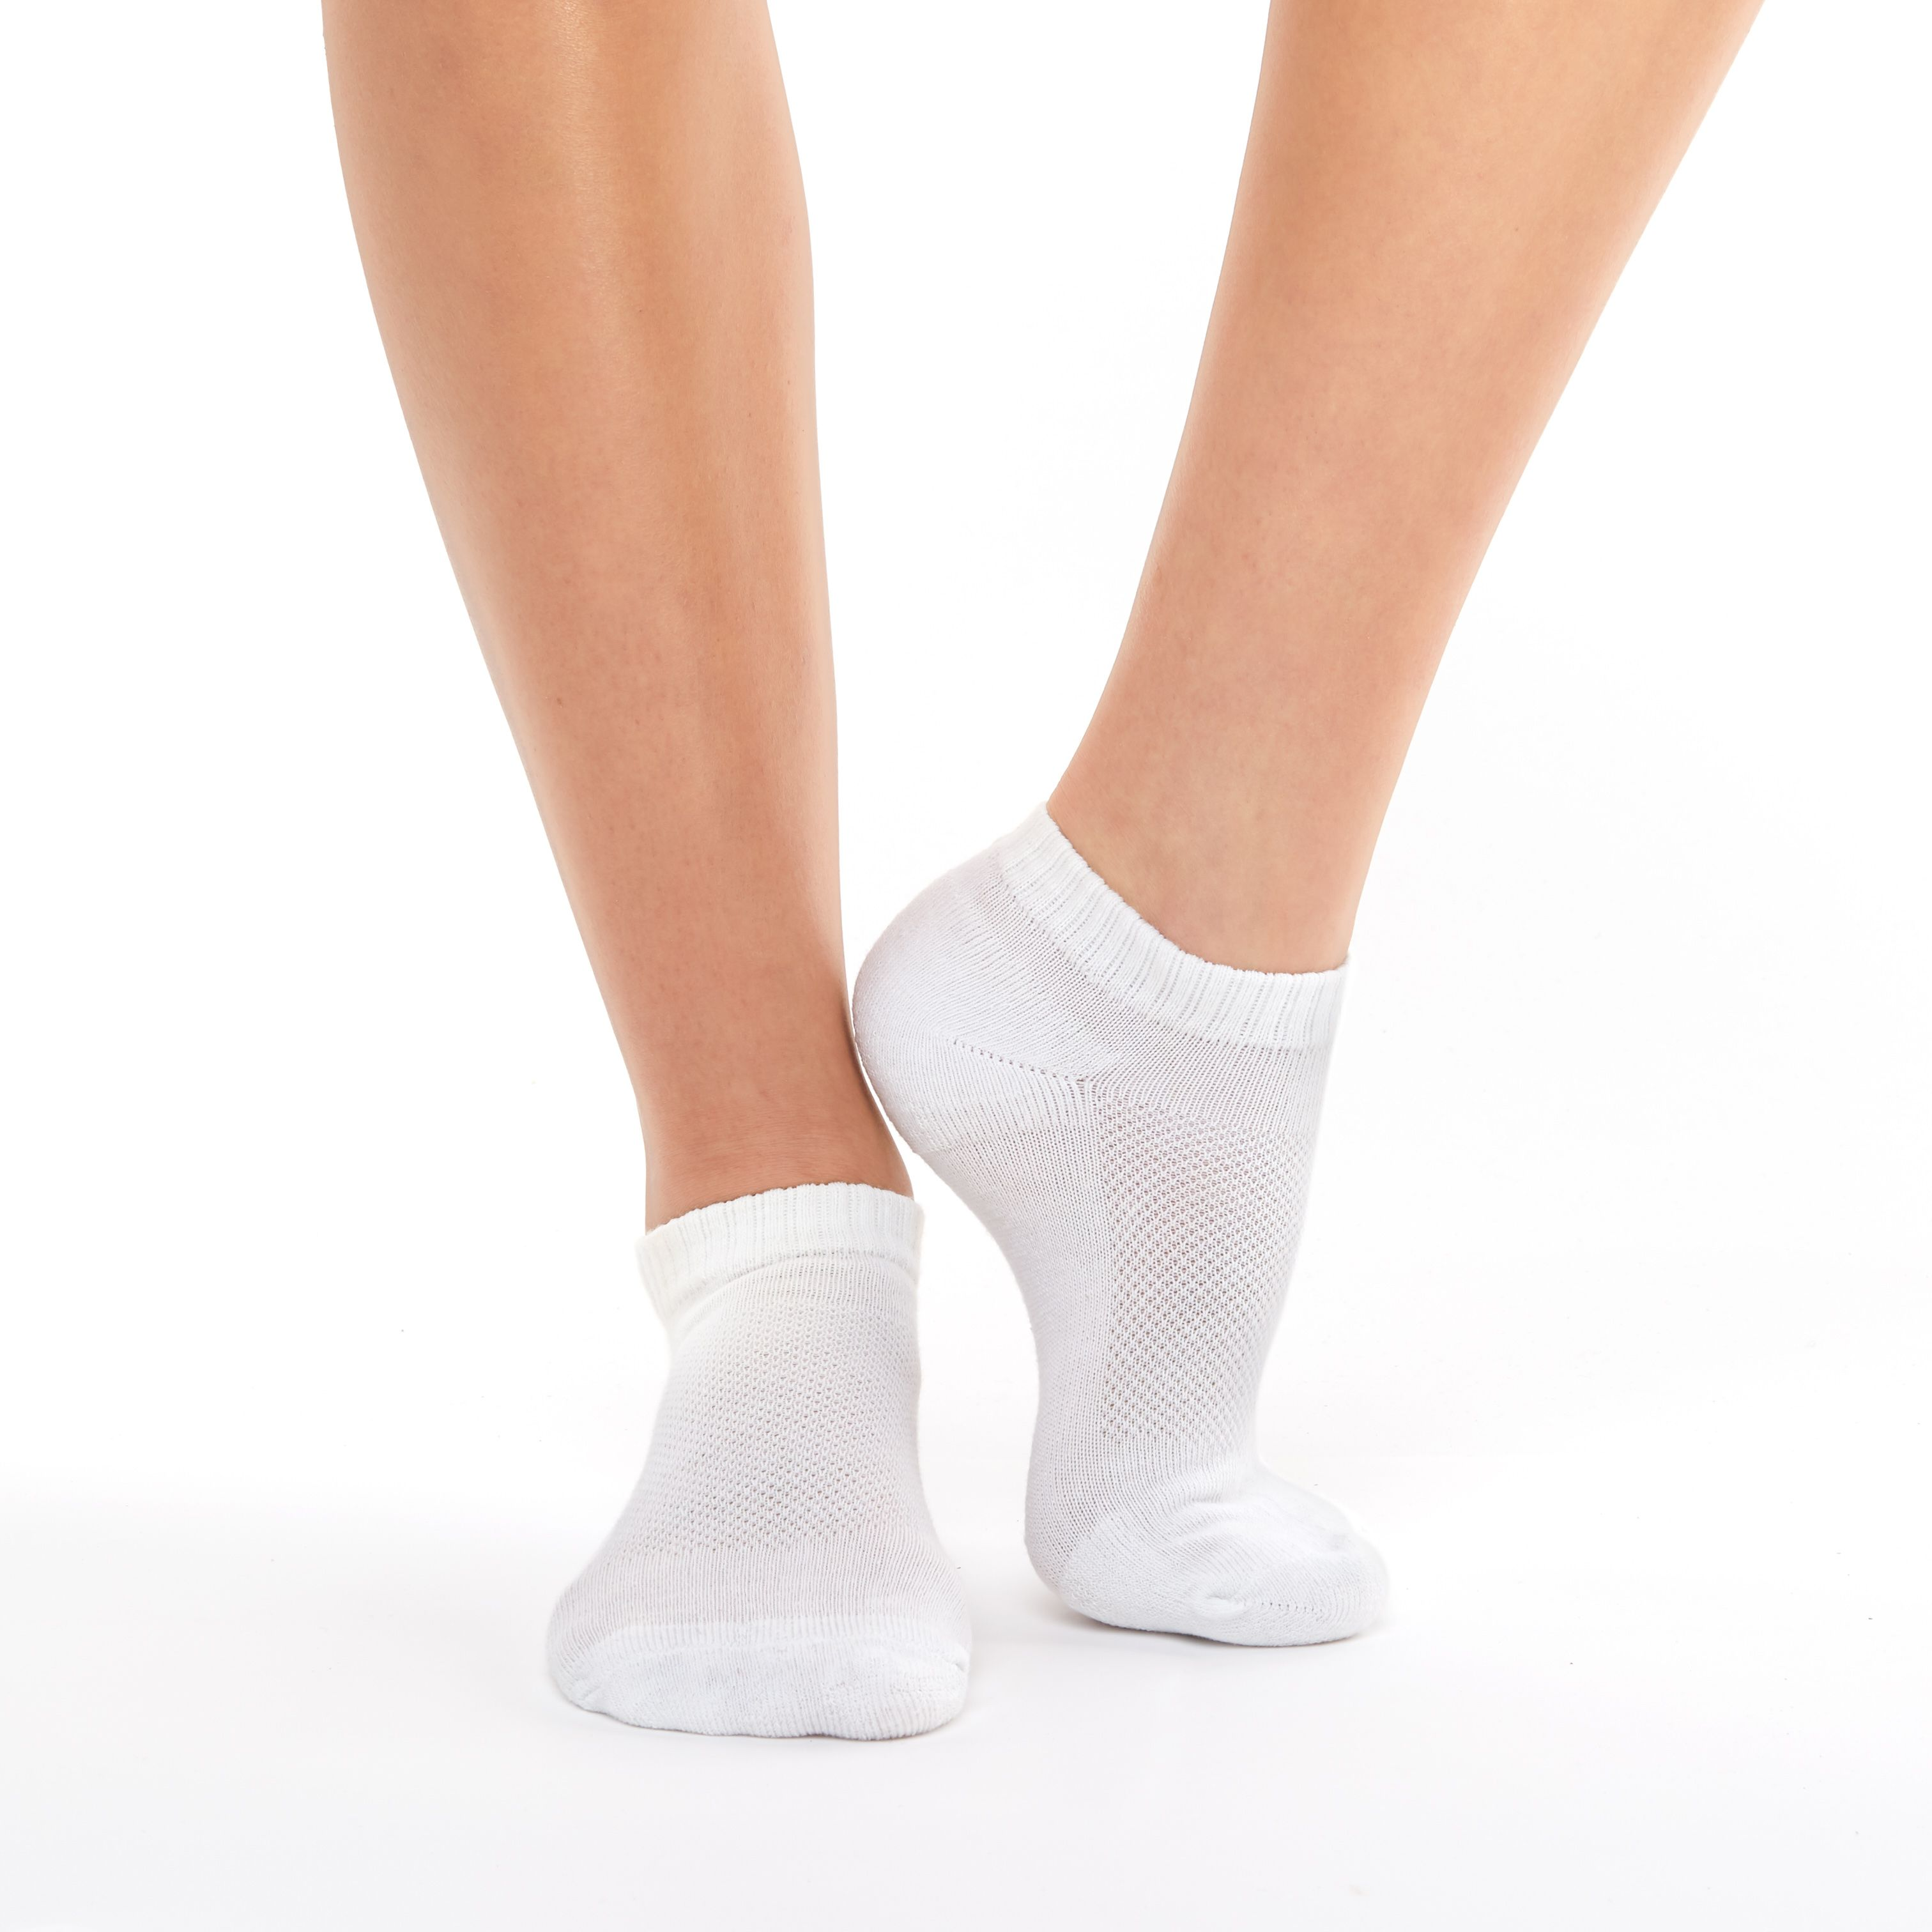 These Volleyball Socks In White Color Is The Best Choice Ever Discover The Worlds Softest Socks For Tennis And School Our Thorl Socks Women Socks Sport Socks